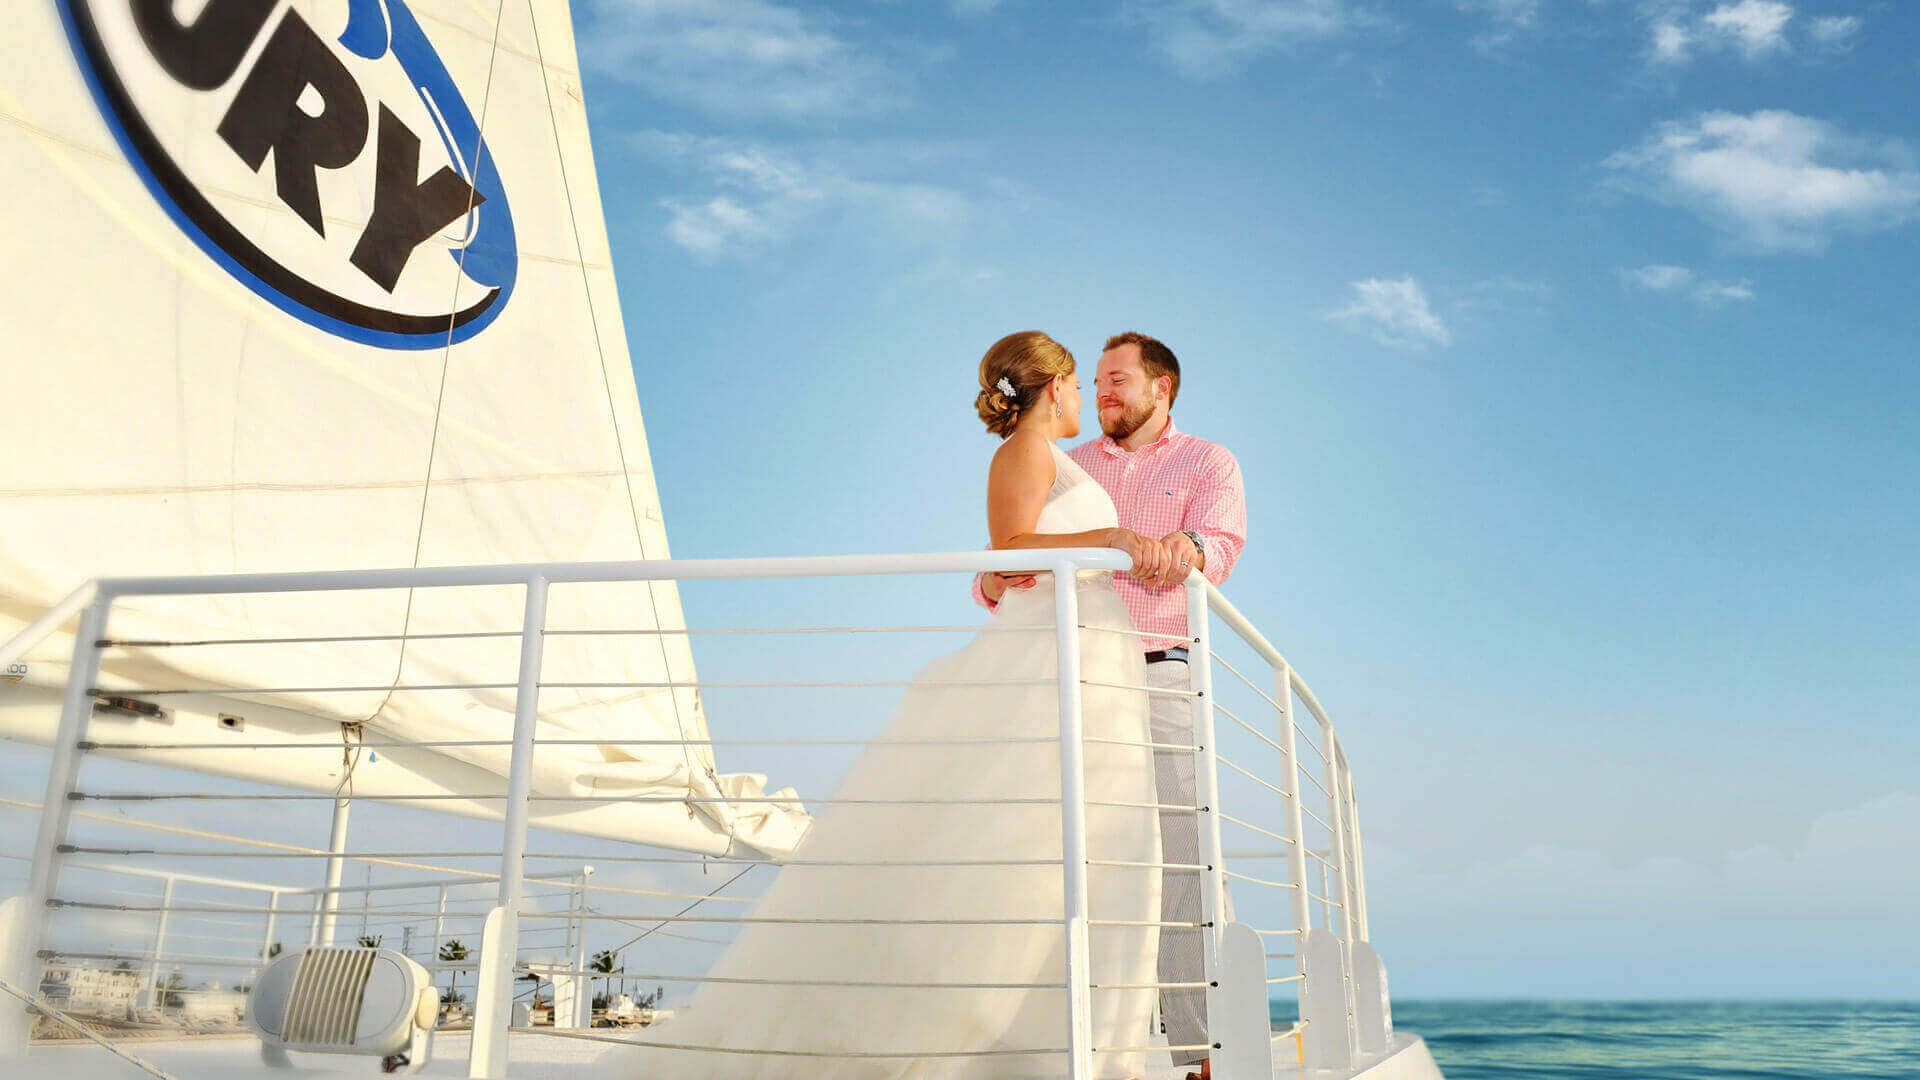 Picture of a Fury catamaran with a wedding couple looking at and smiling at each other and the ocean behind them.